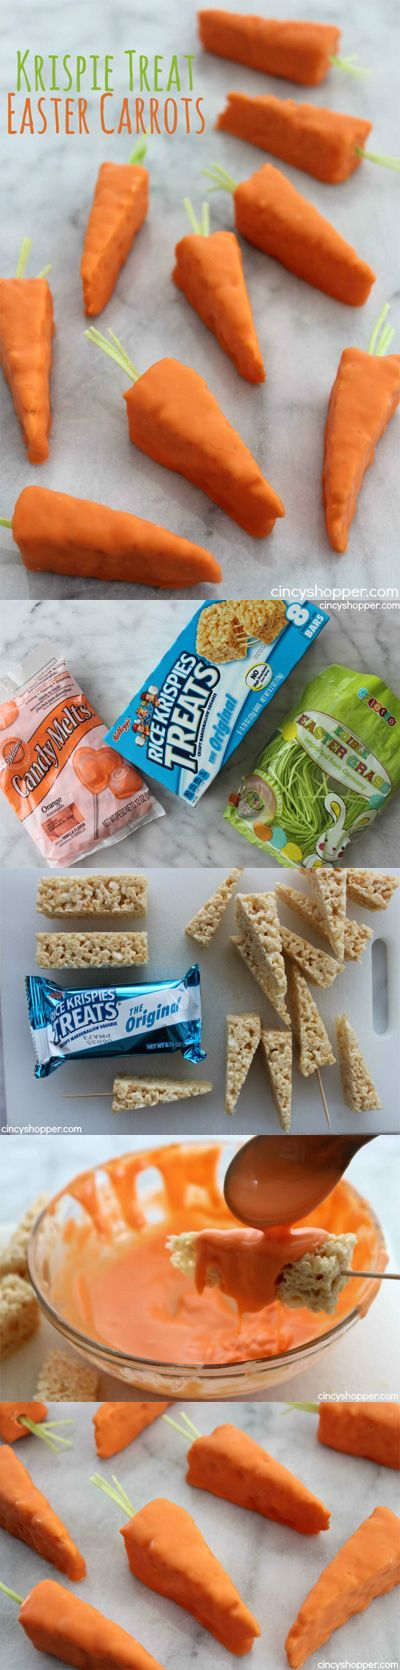 Krispie Treat Easter Carrots- Super easy Easter treats using store bought Krispie Treats. Great last minute Easter snack. Perfect for dessert or to wrap for Easter baskets.